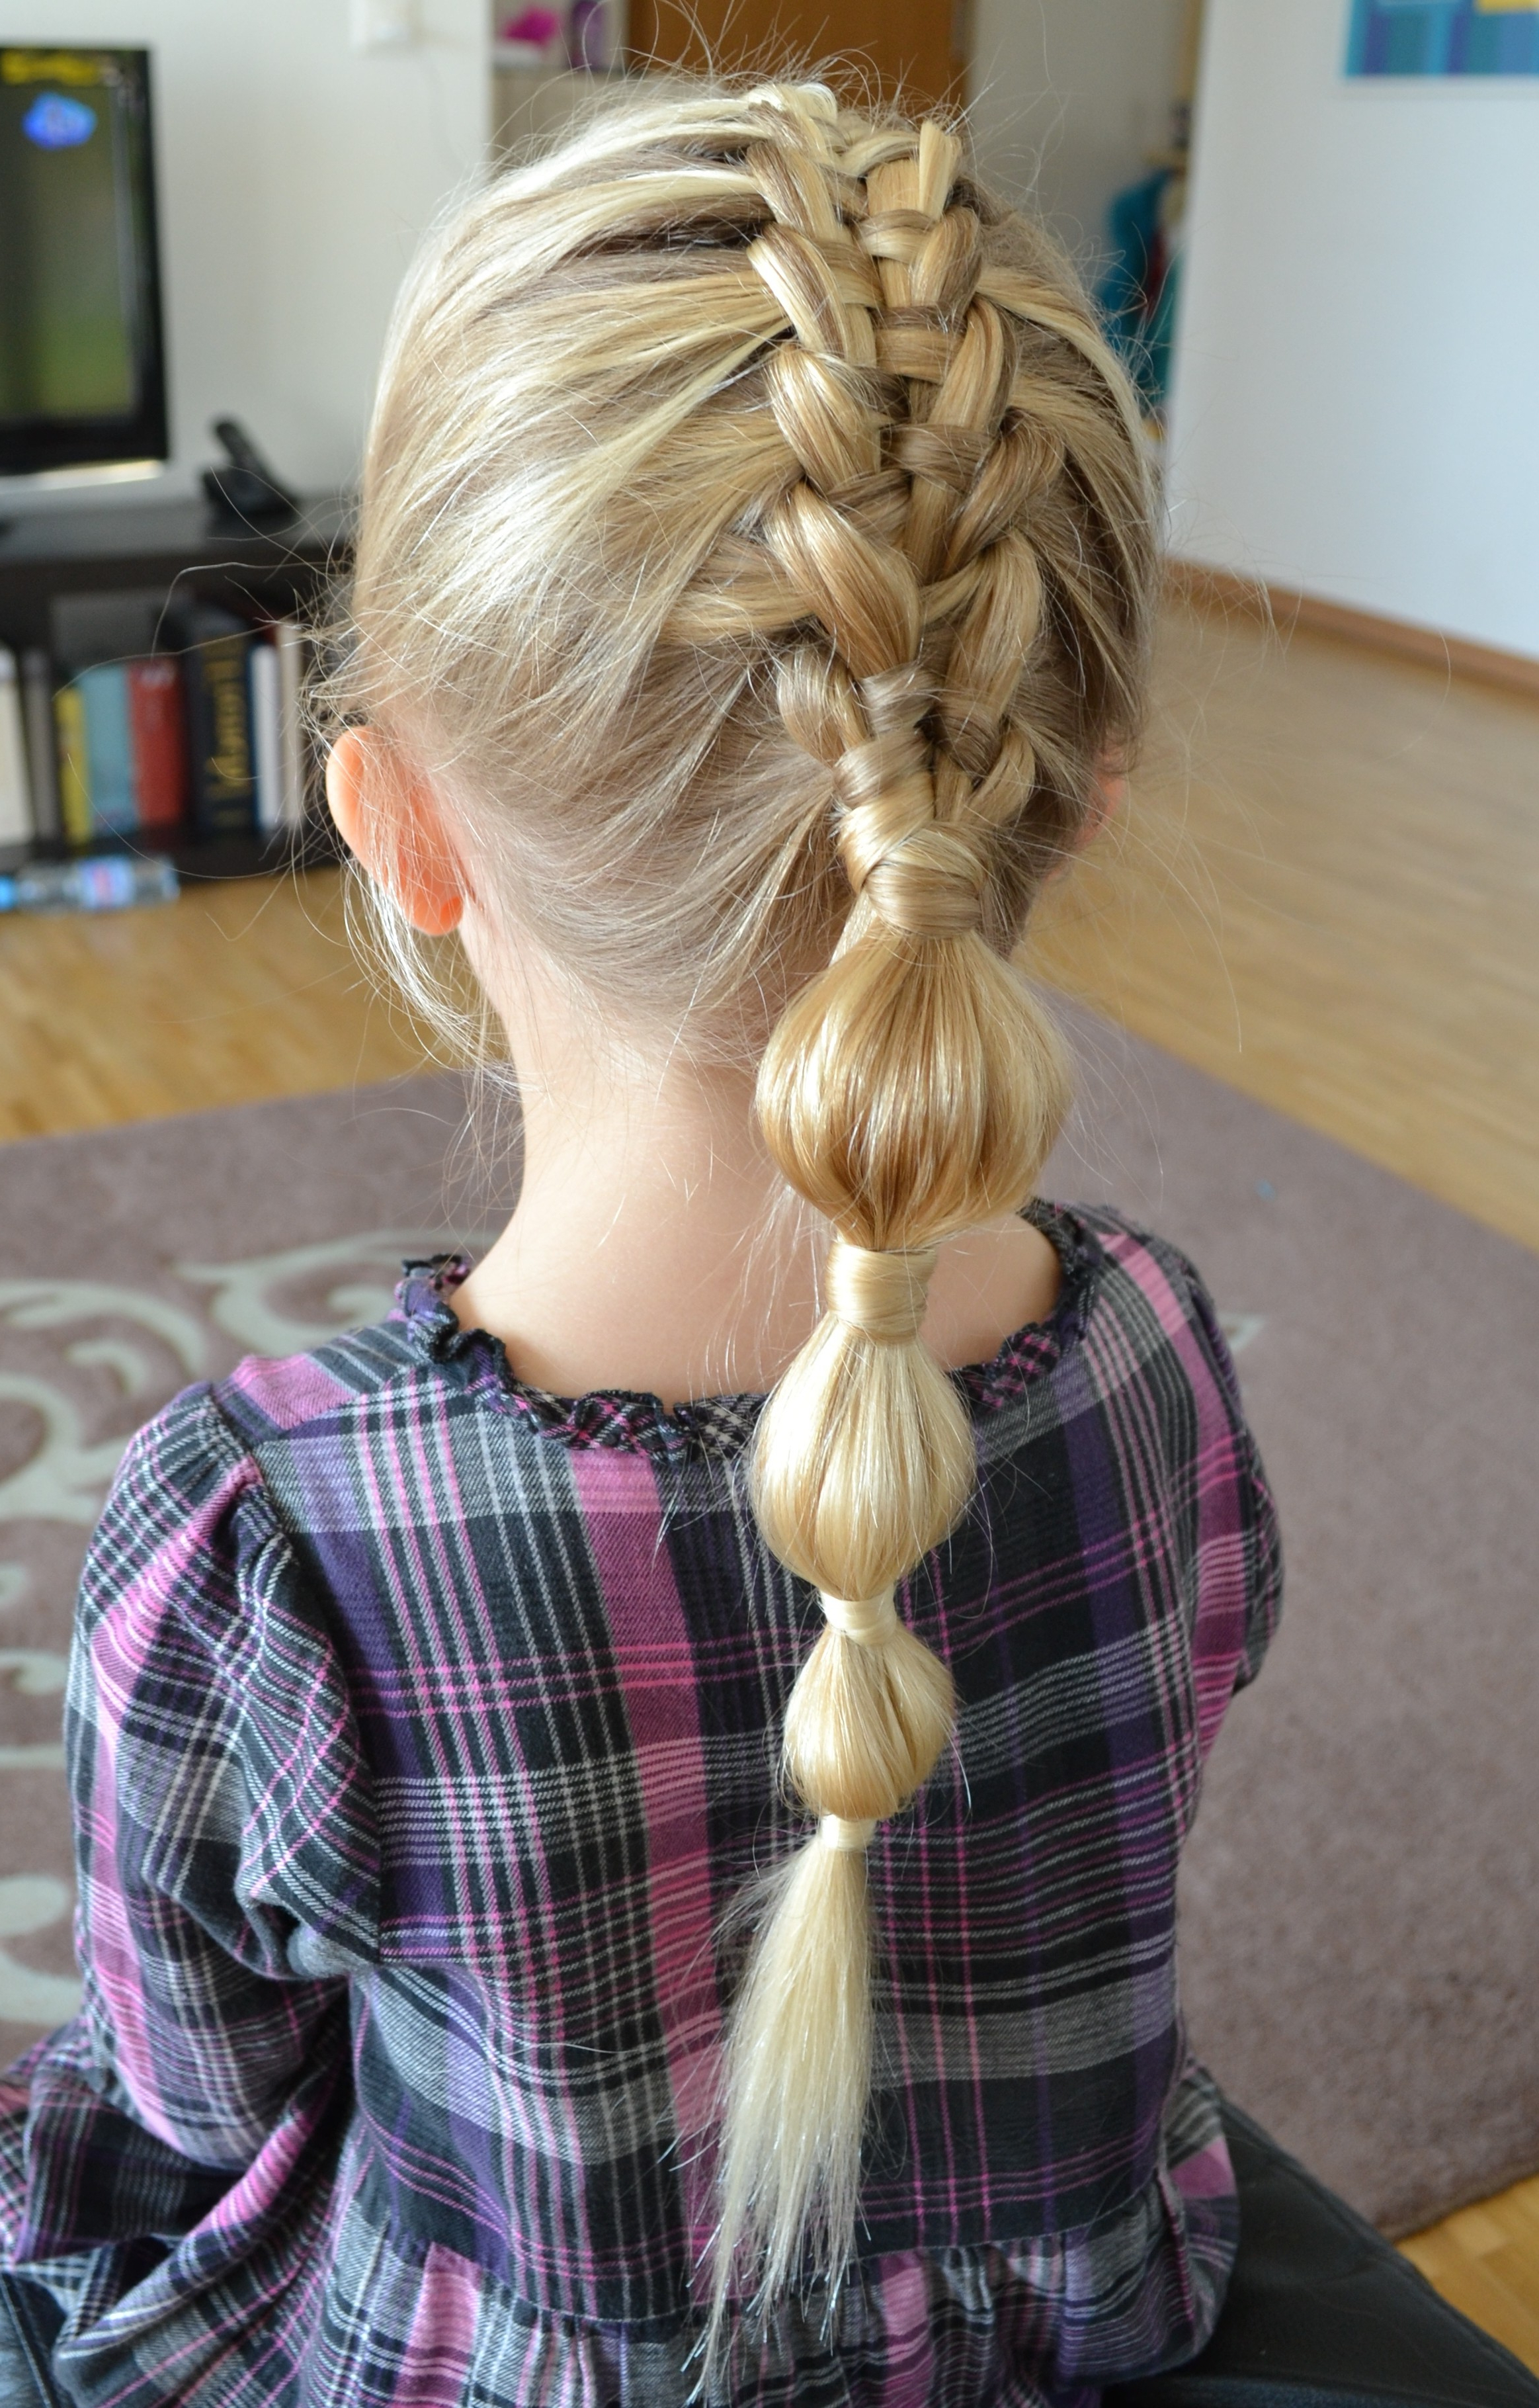 Widely Used Braided Bubble Ponytail Hairstyles For Ponytails (View 16 of 20)